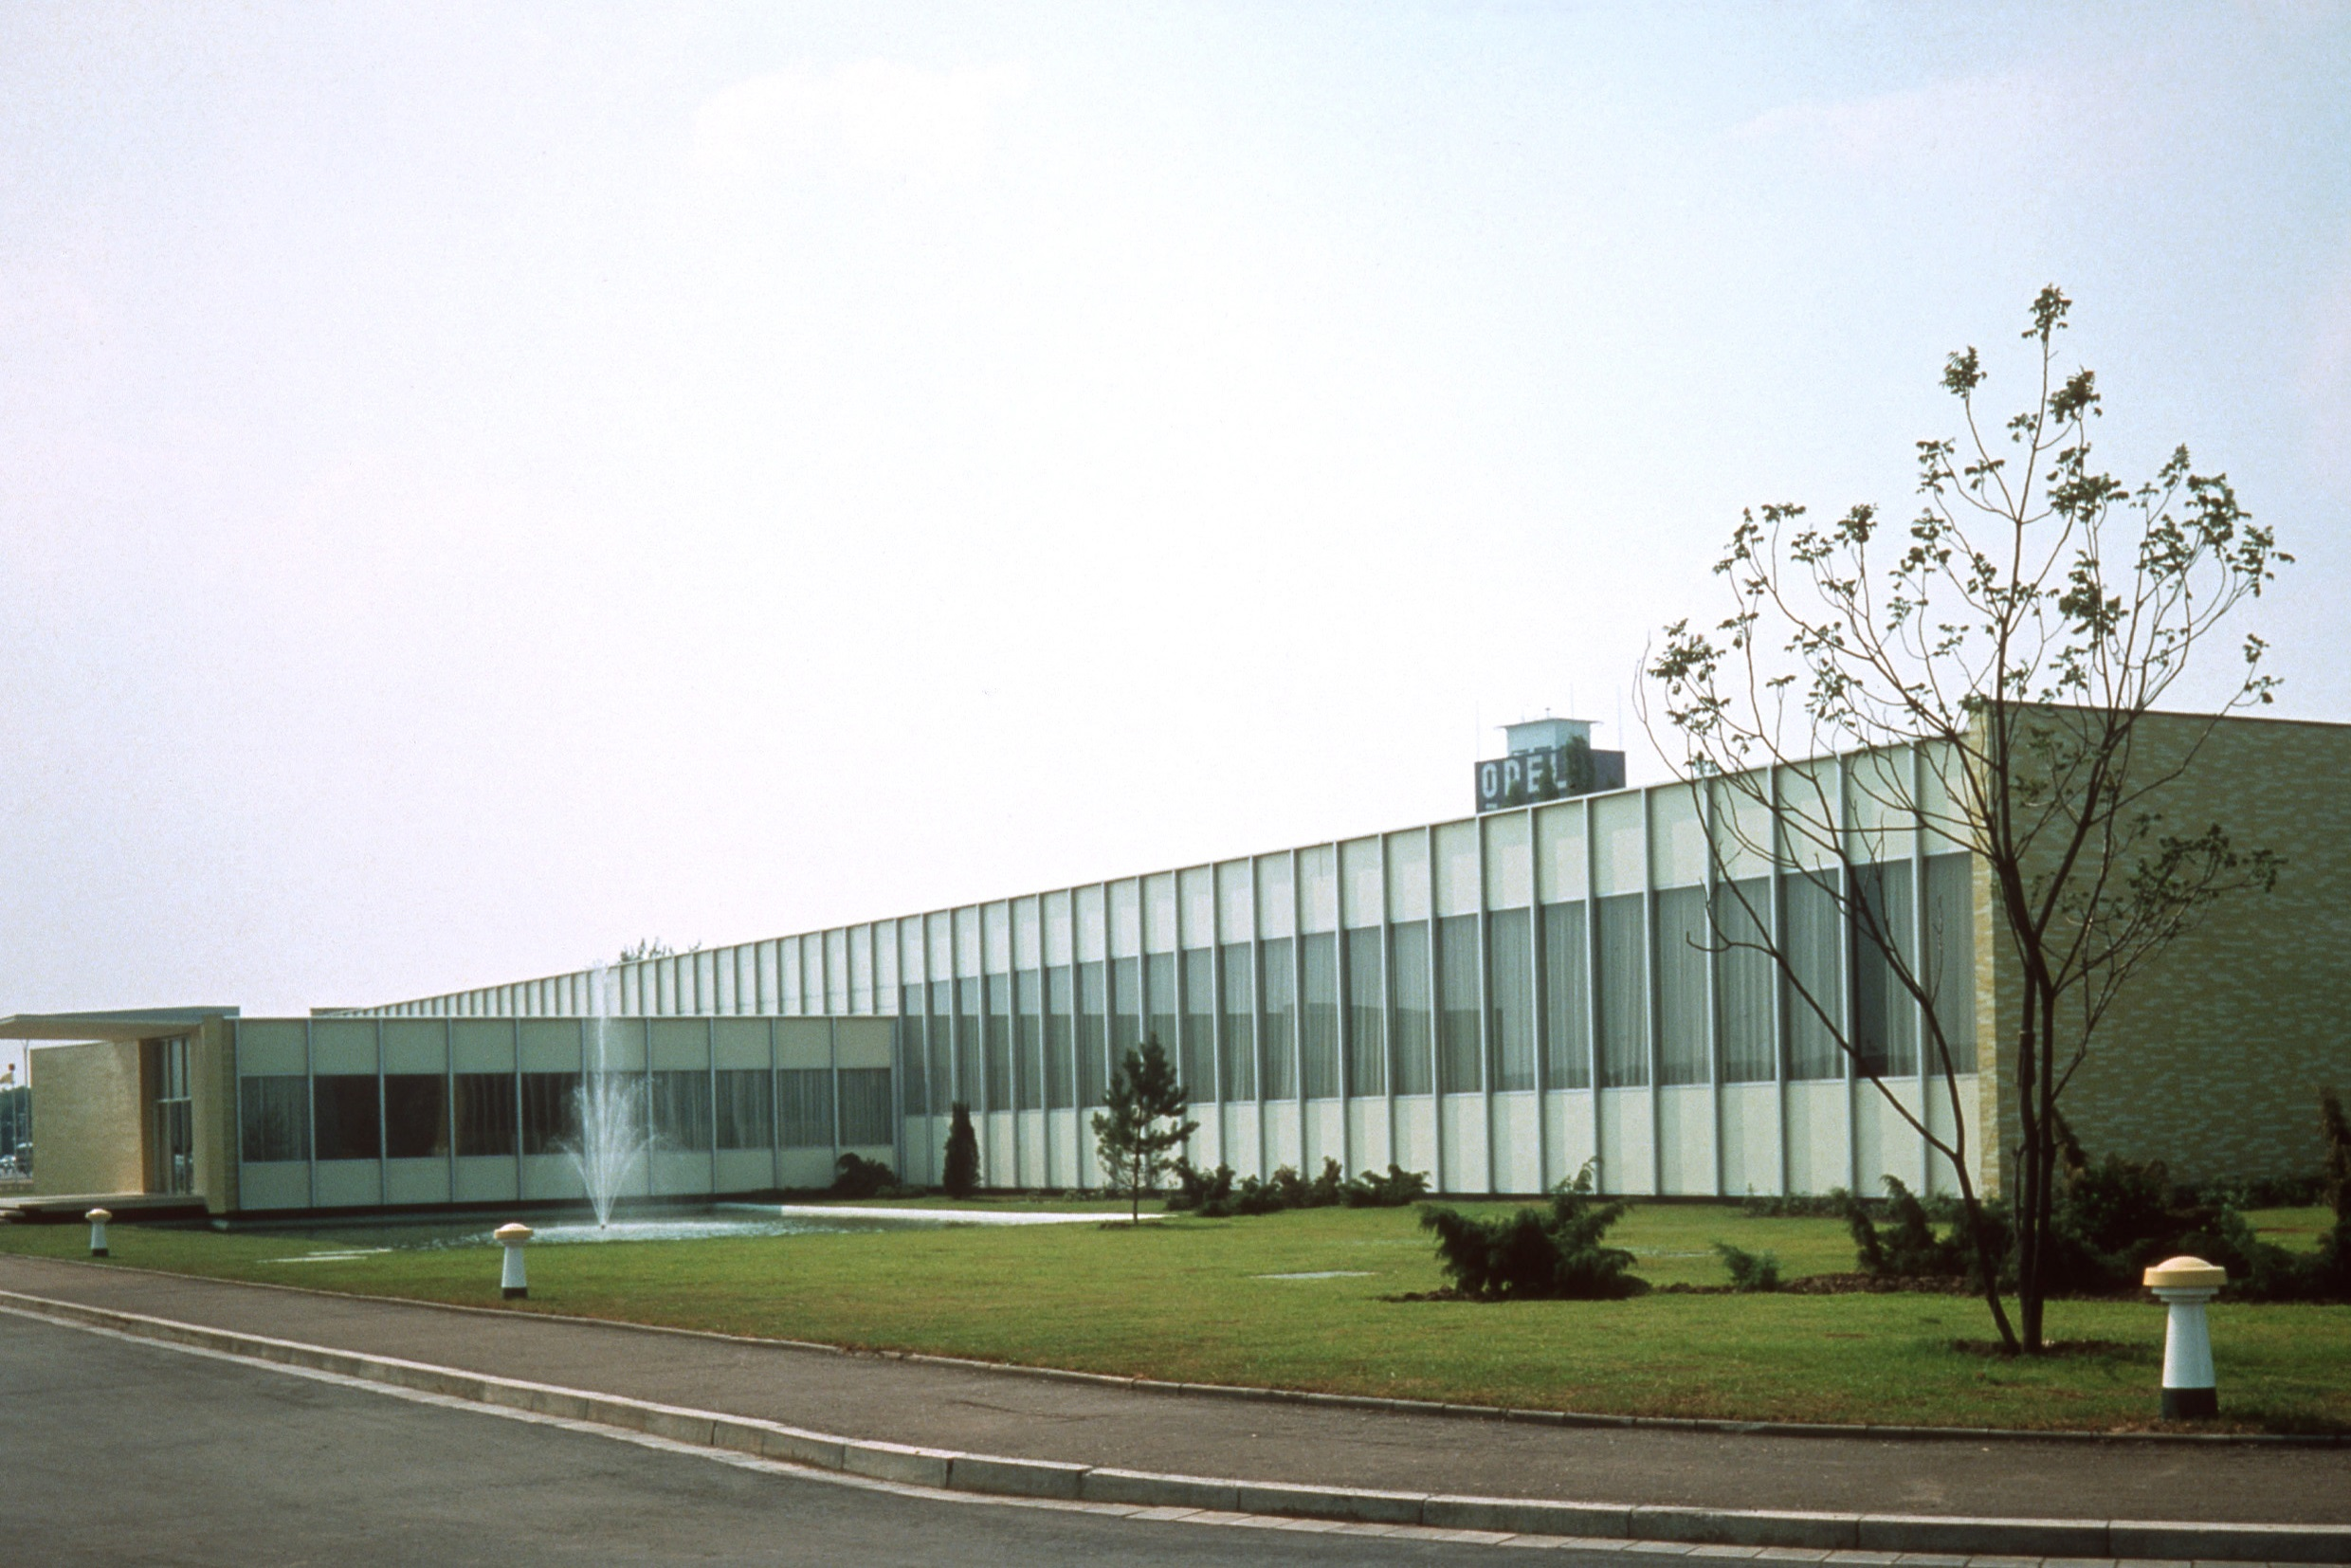 Opel Styling facility